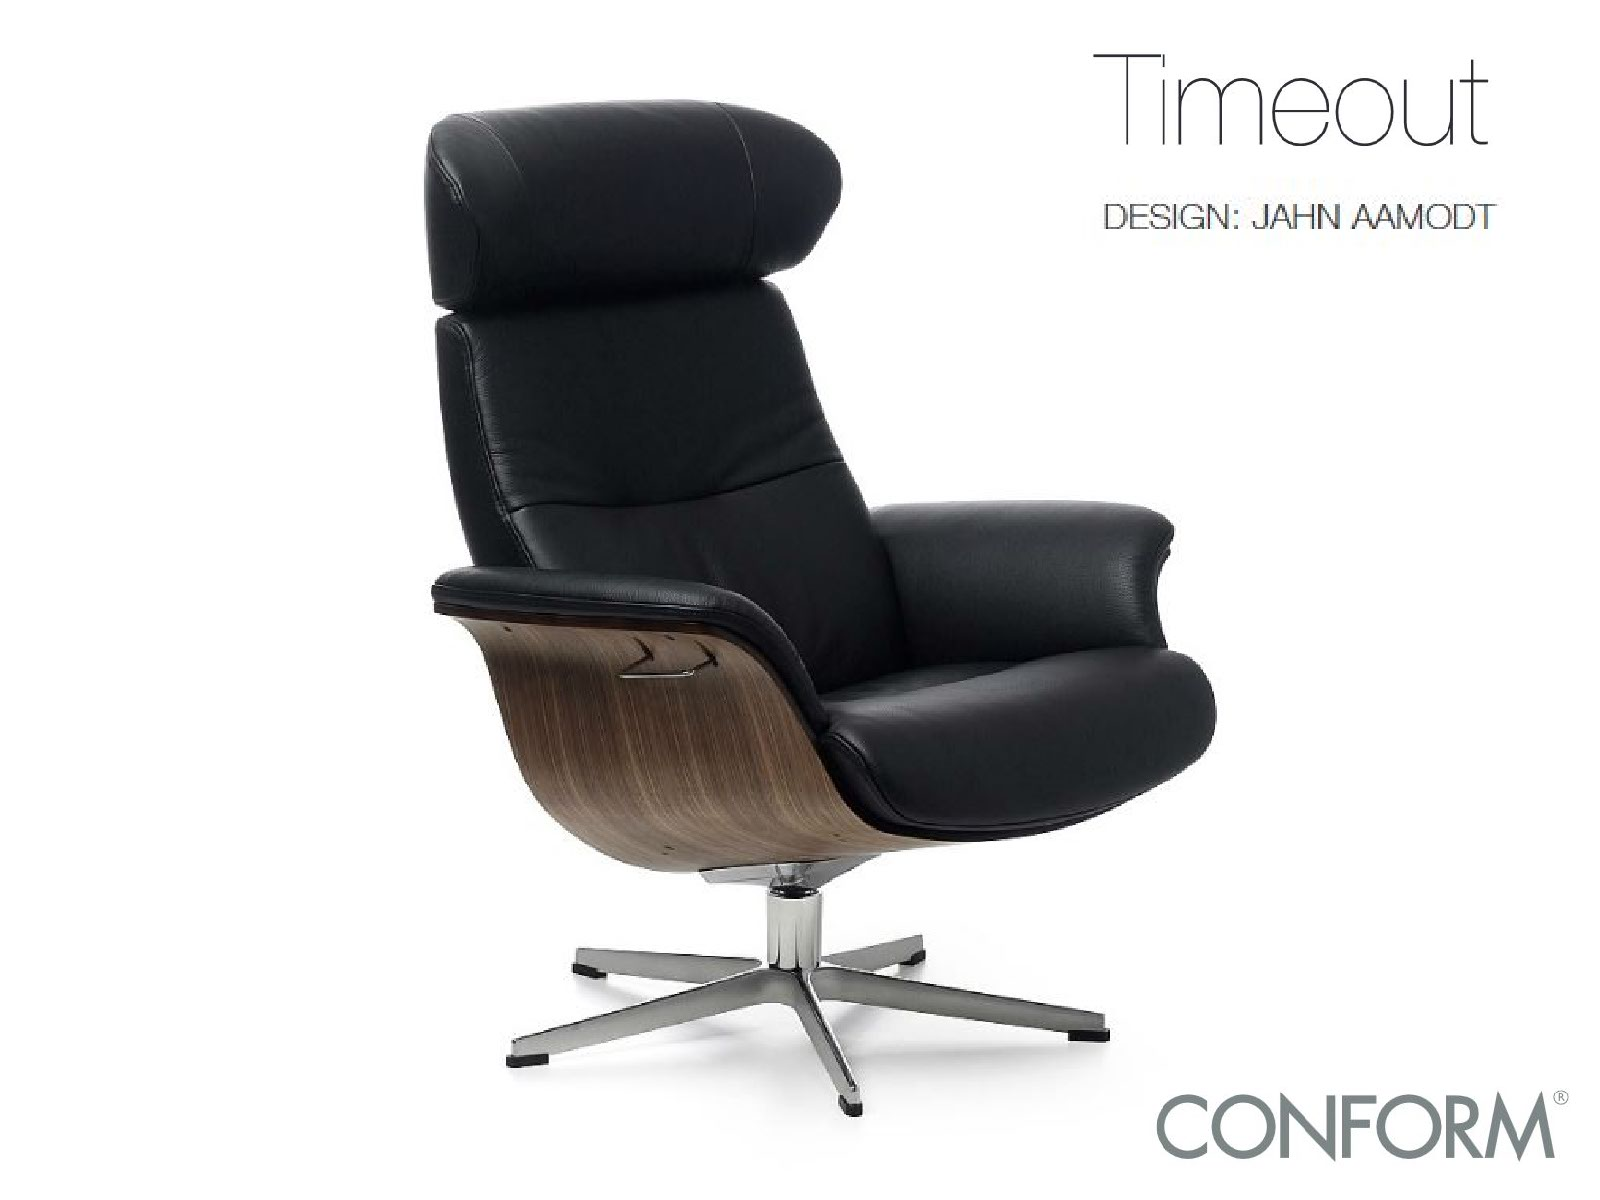 Conform Timeout Sessel Kaufen Conform Sessel Timeout. Conform Sessel Timeout Neu